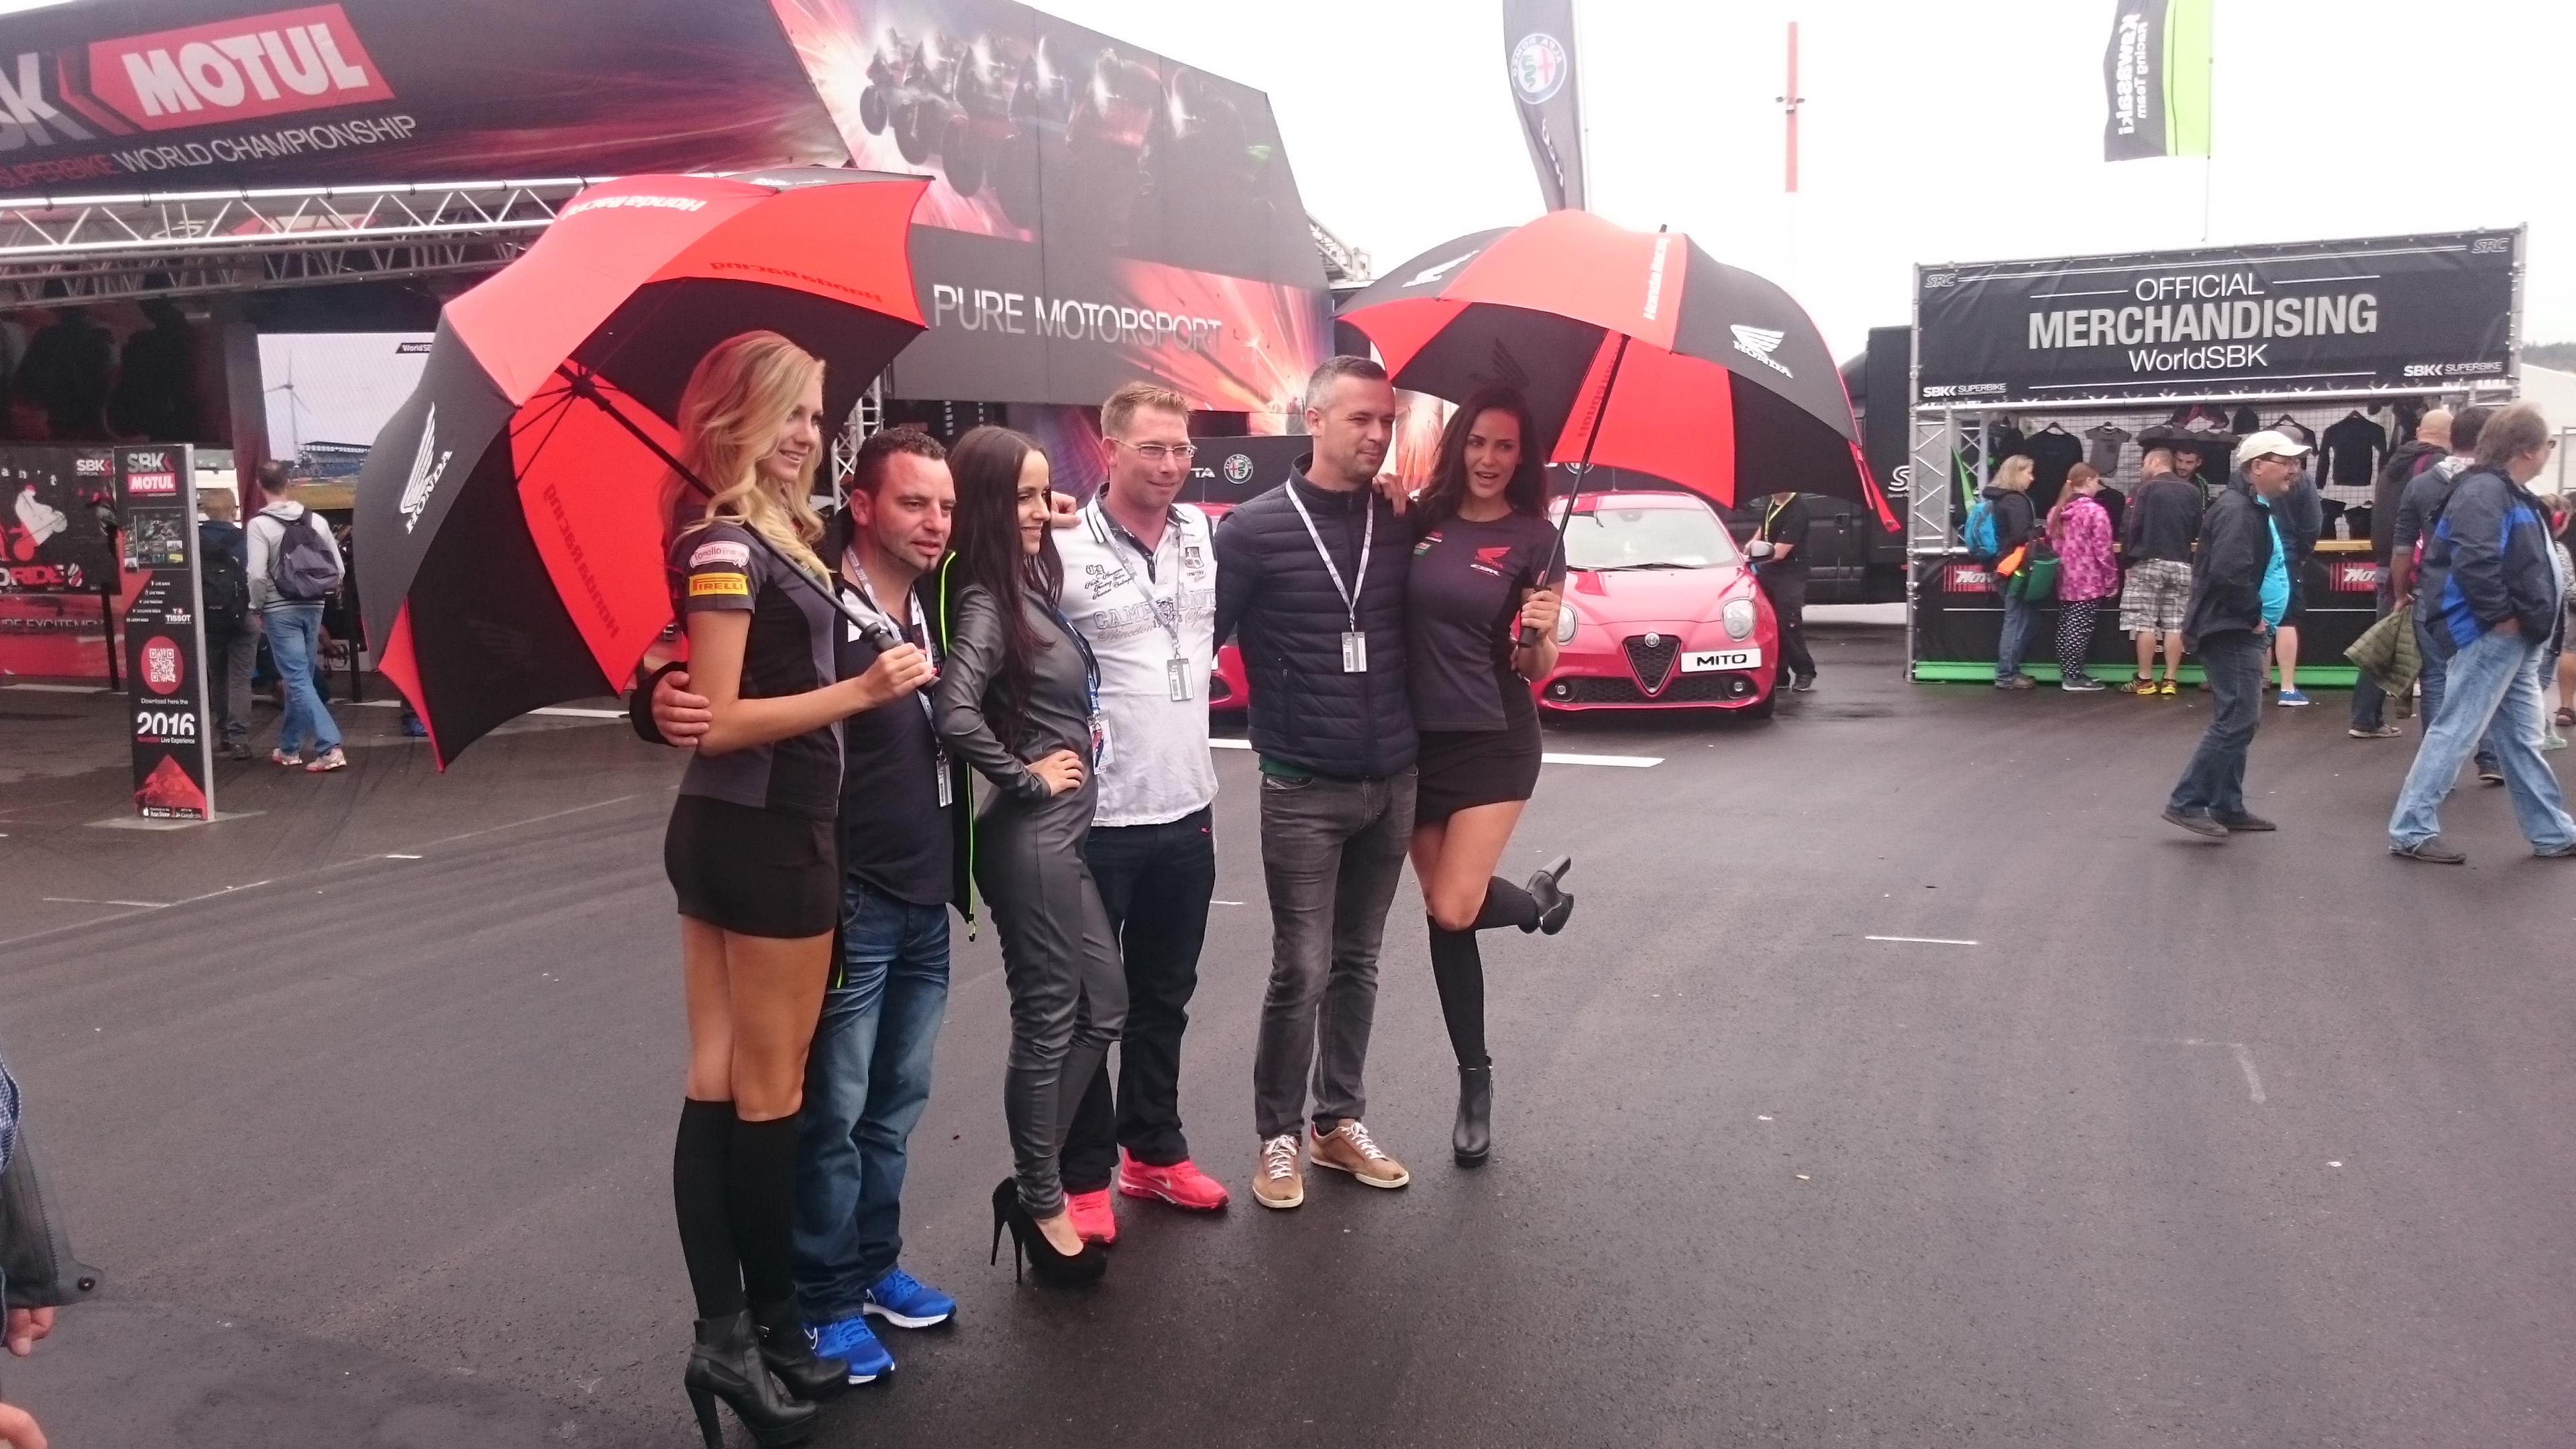 hondaproracing germany casting grid umbrella paddock girls monstergirls deutschland germany europe bensch media_09